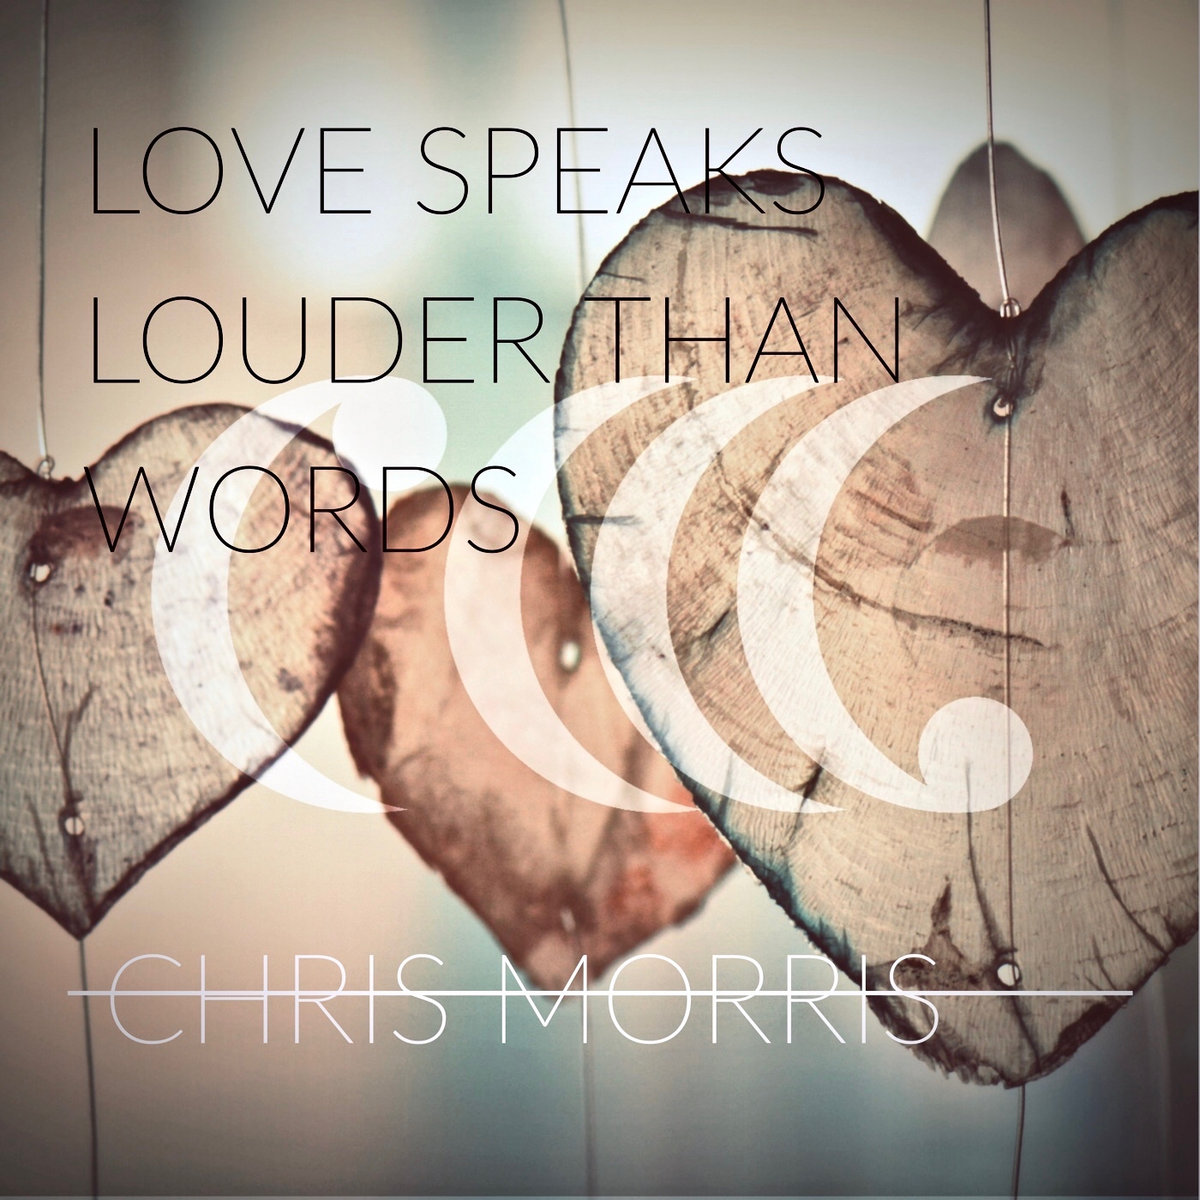 Love Speaks Louder Than Words (Single) by Chris Morris